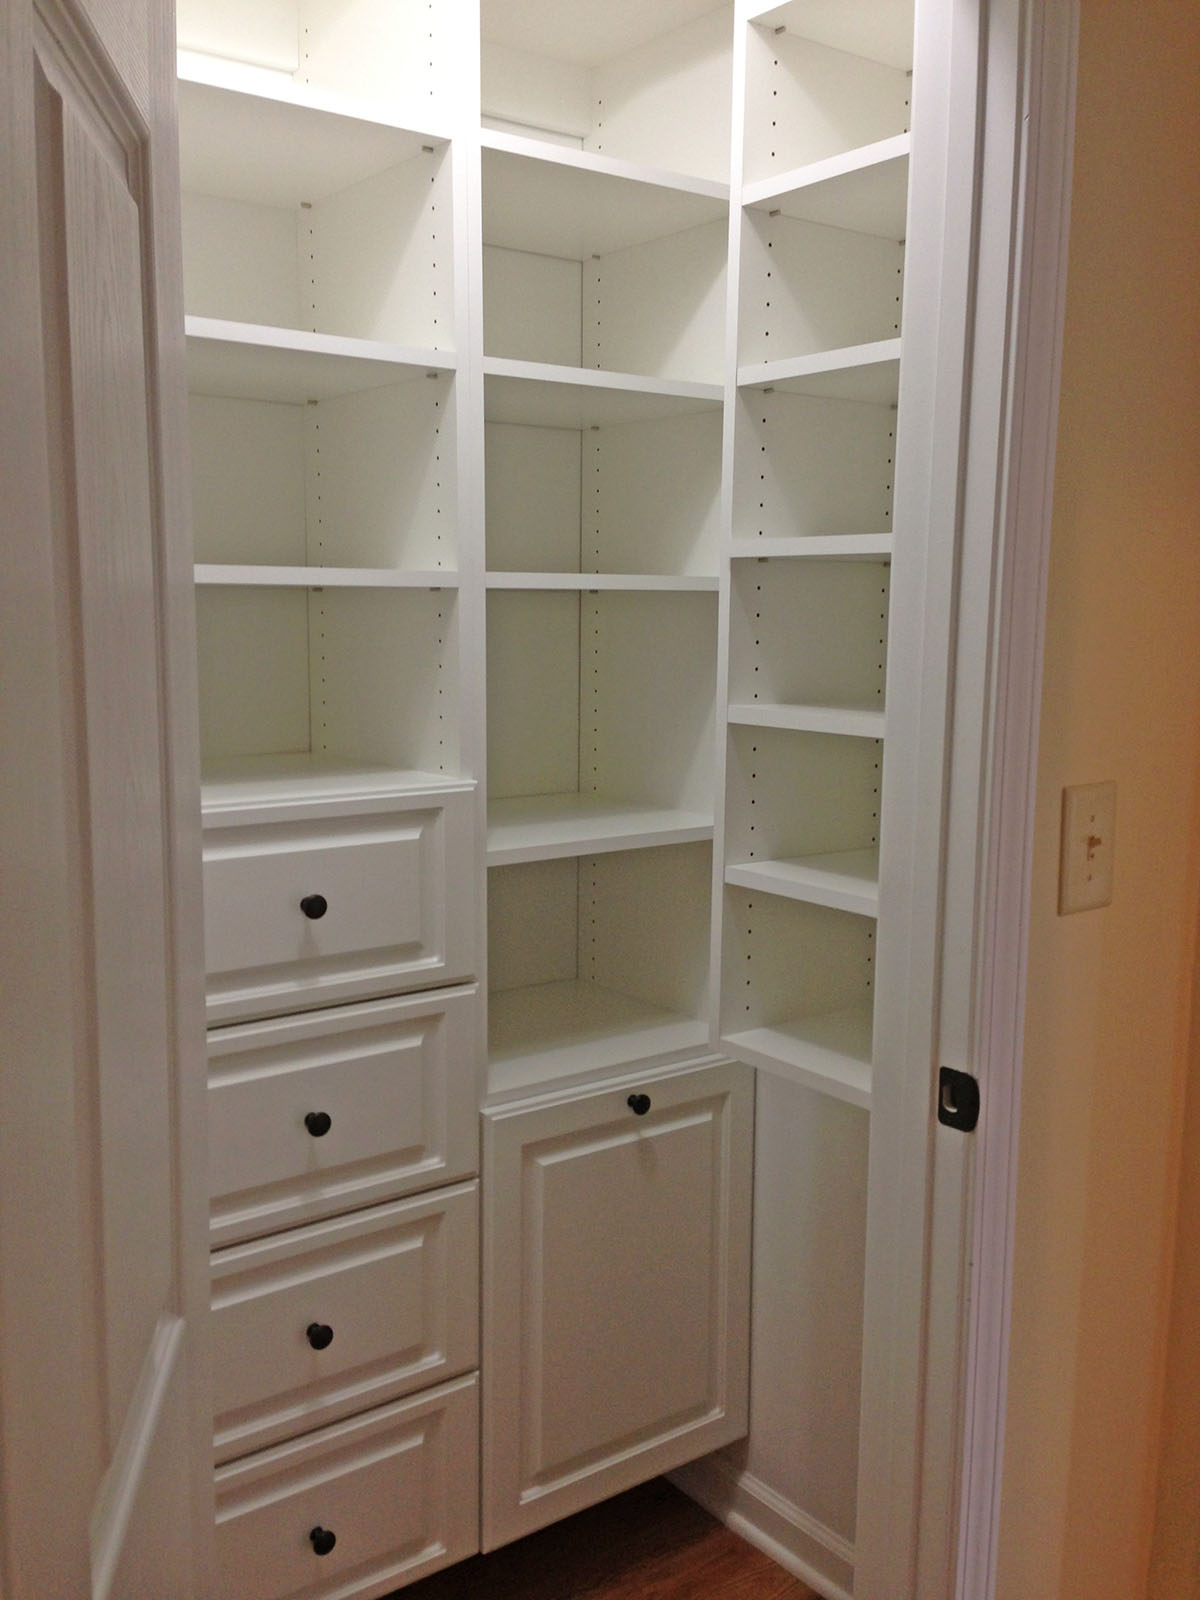 Custom Closet Design Ideas & Solutions | Storage | Georgia ...